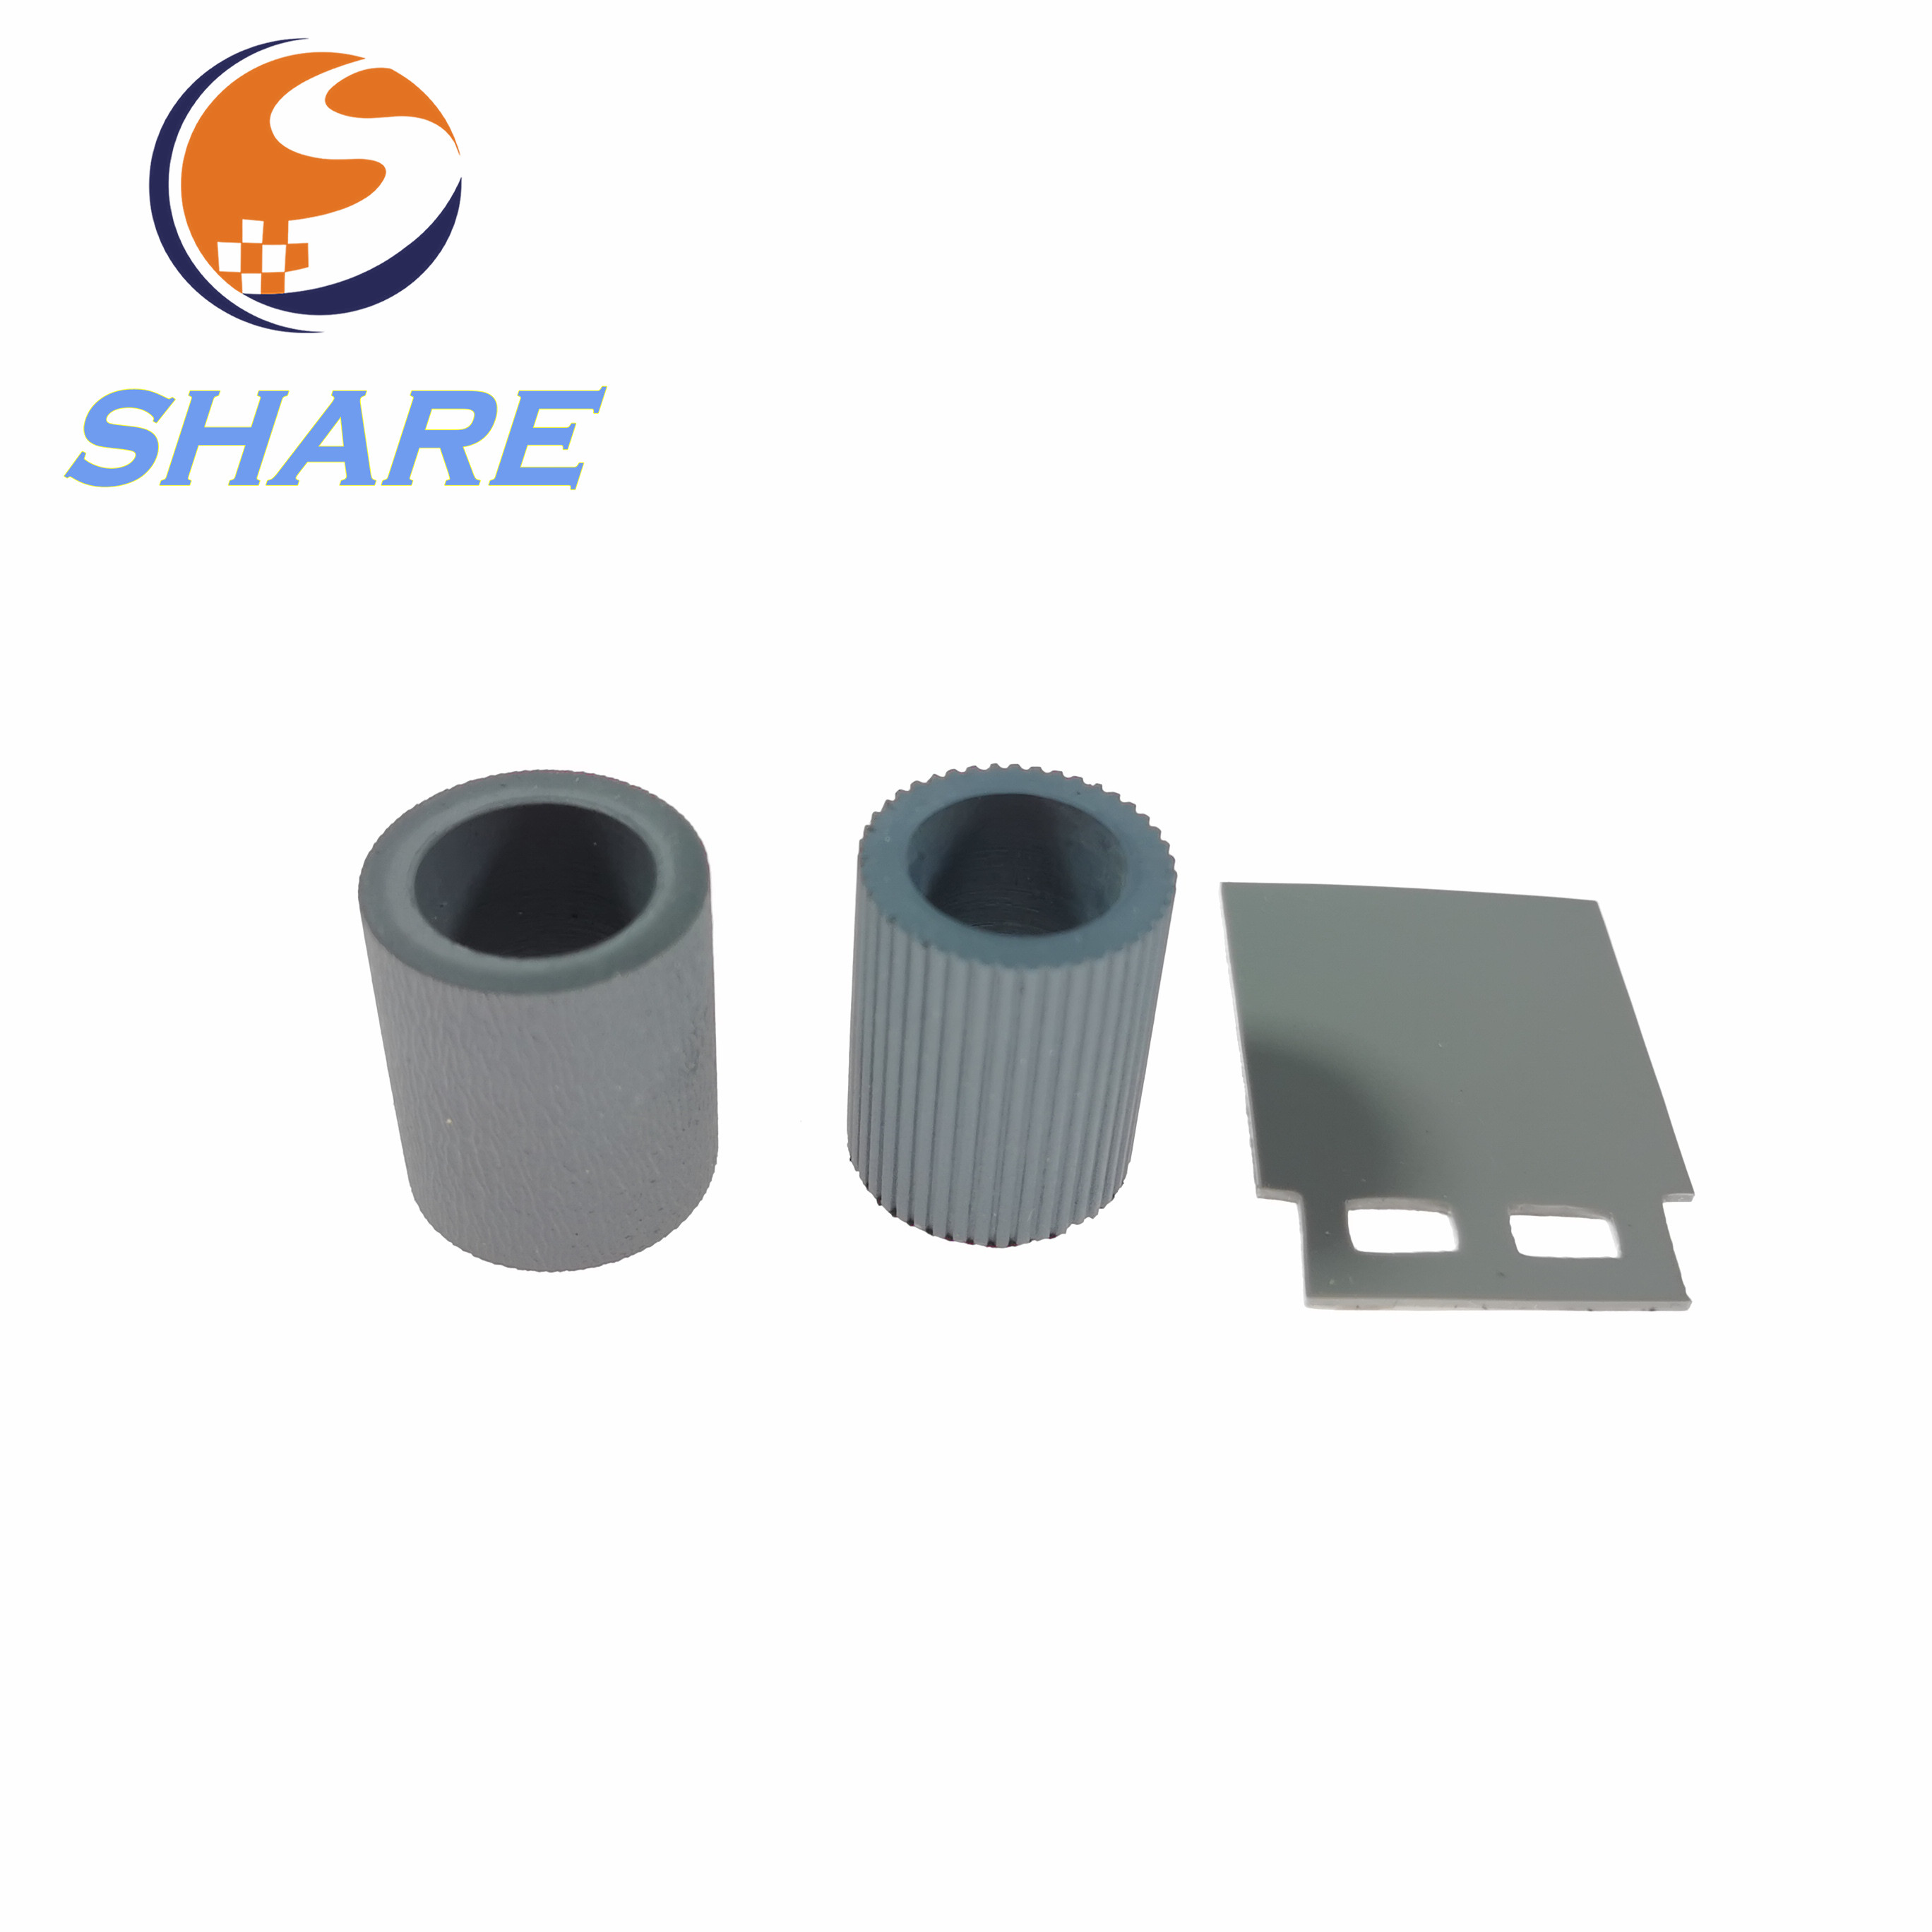 New Rubber kit ADF Separation Pad rubber Pickup Roller rubber L2685A L2685 60001 L2686A For HP Scanjet N9120 HP9120|Printer Parts| |  - title=